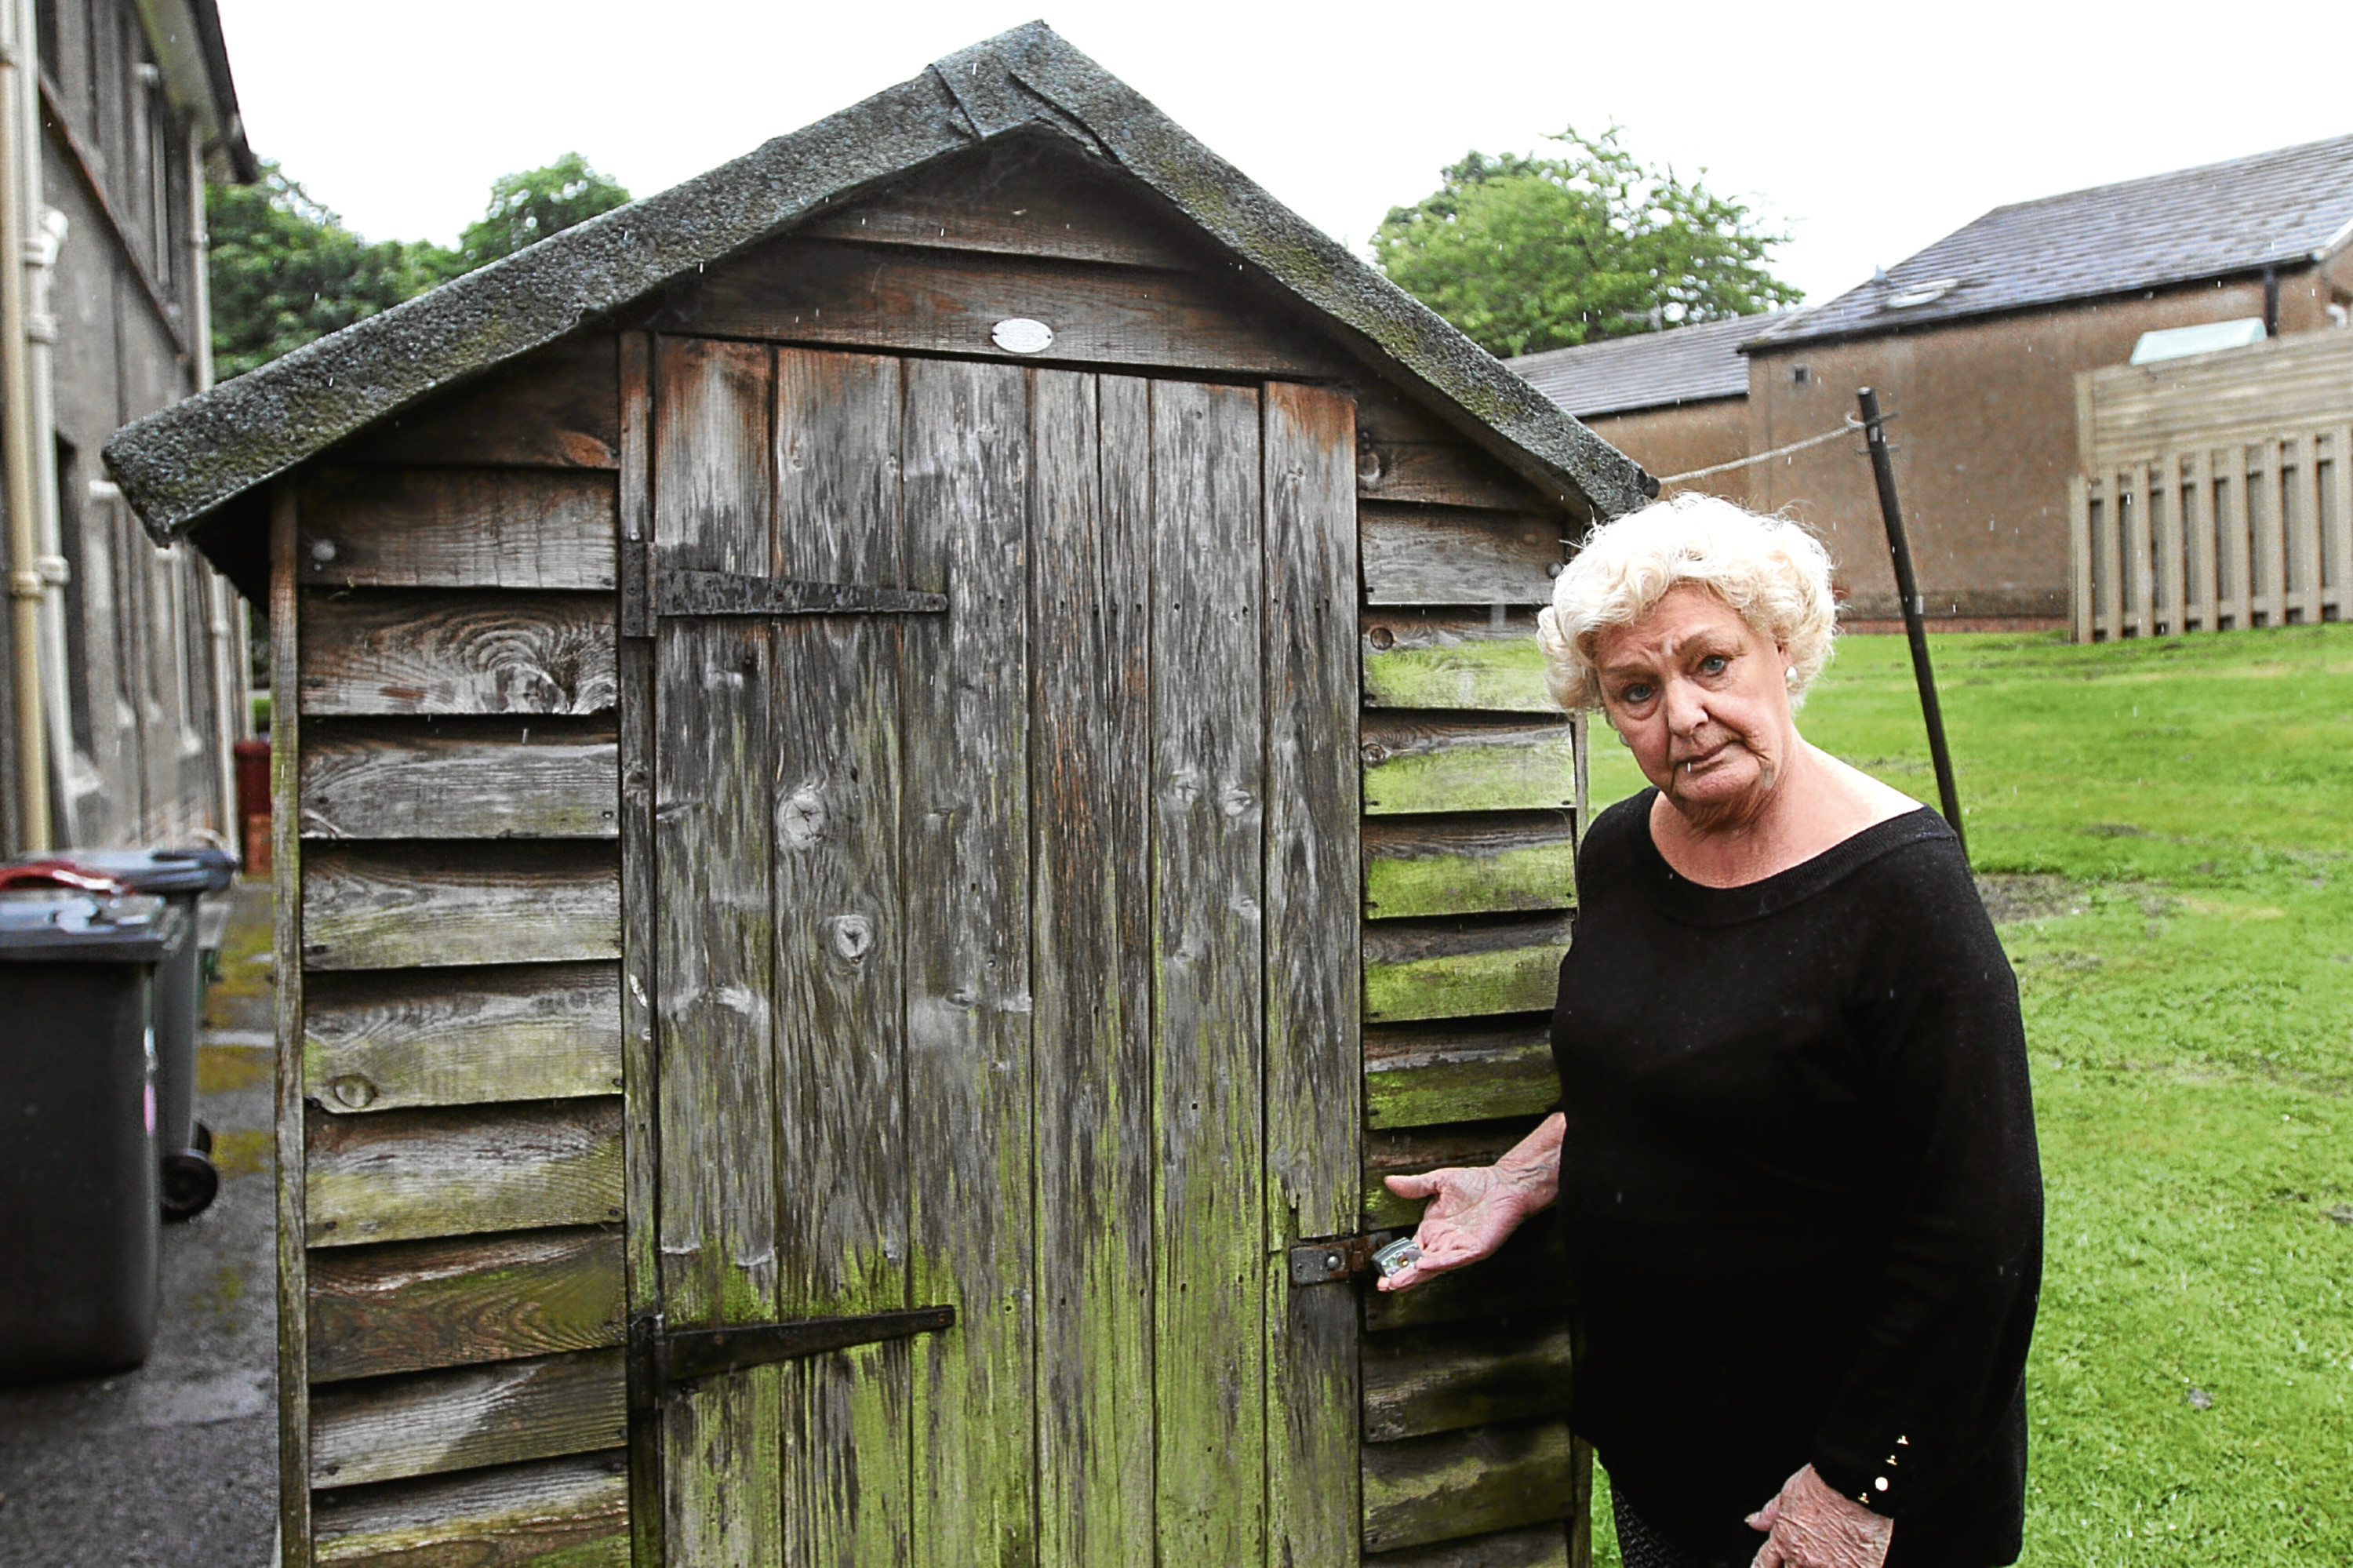 Margaret Barry is pictured next to her shed, which was being emptied by three men when she came home one day.